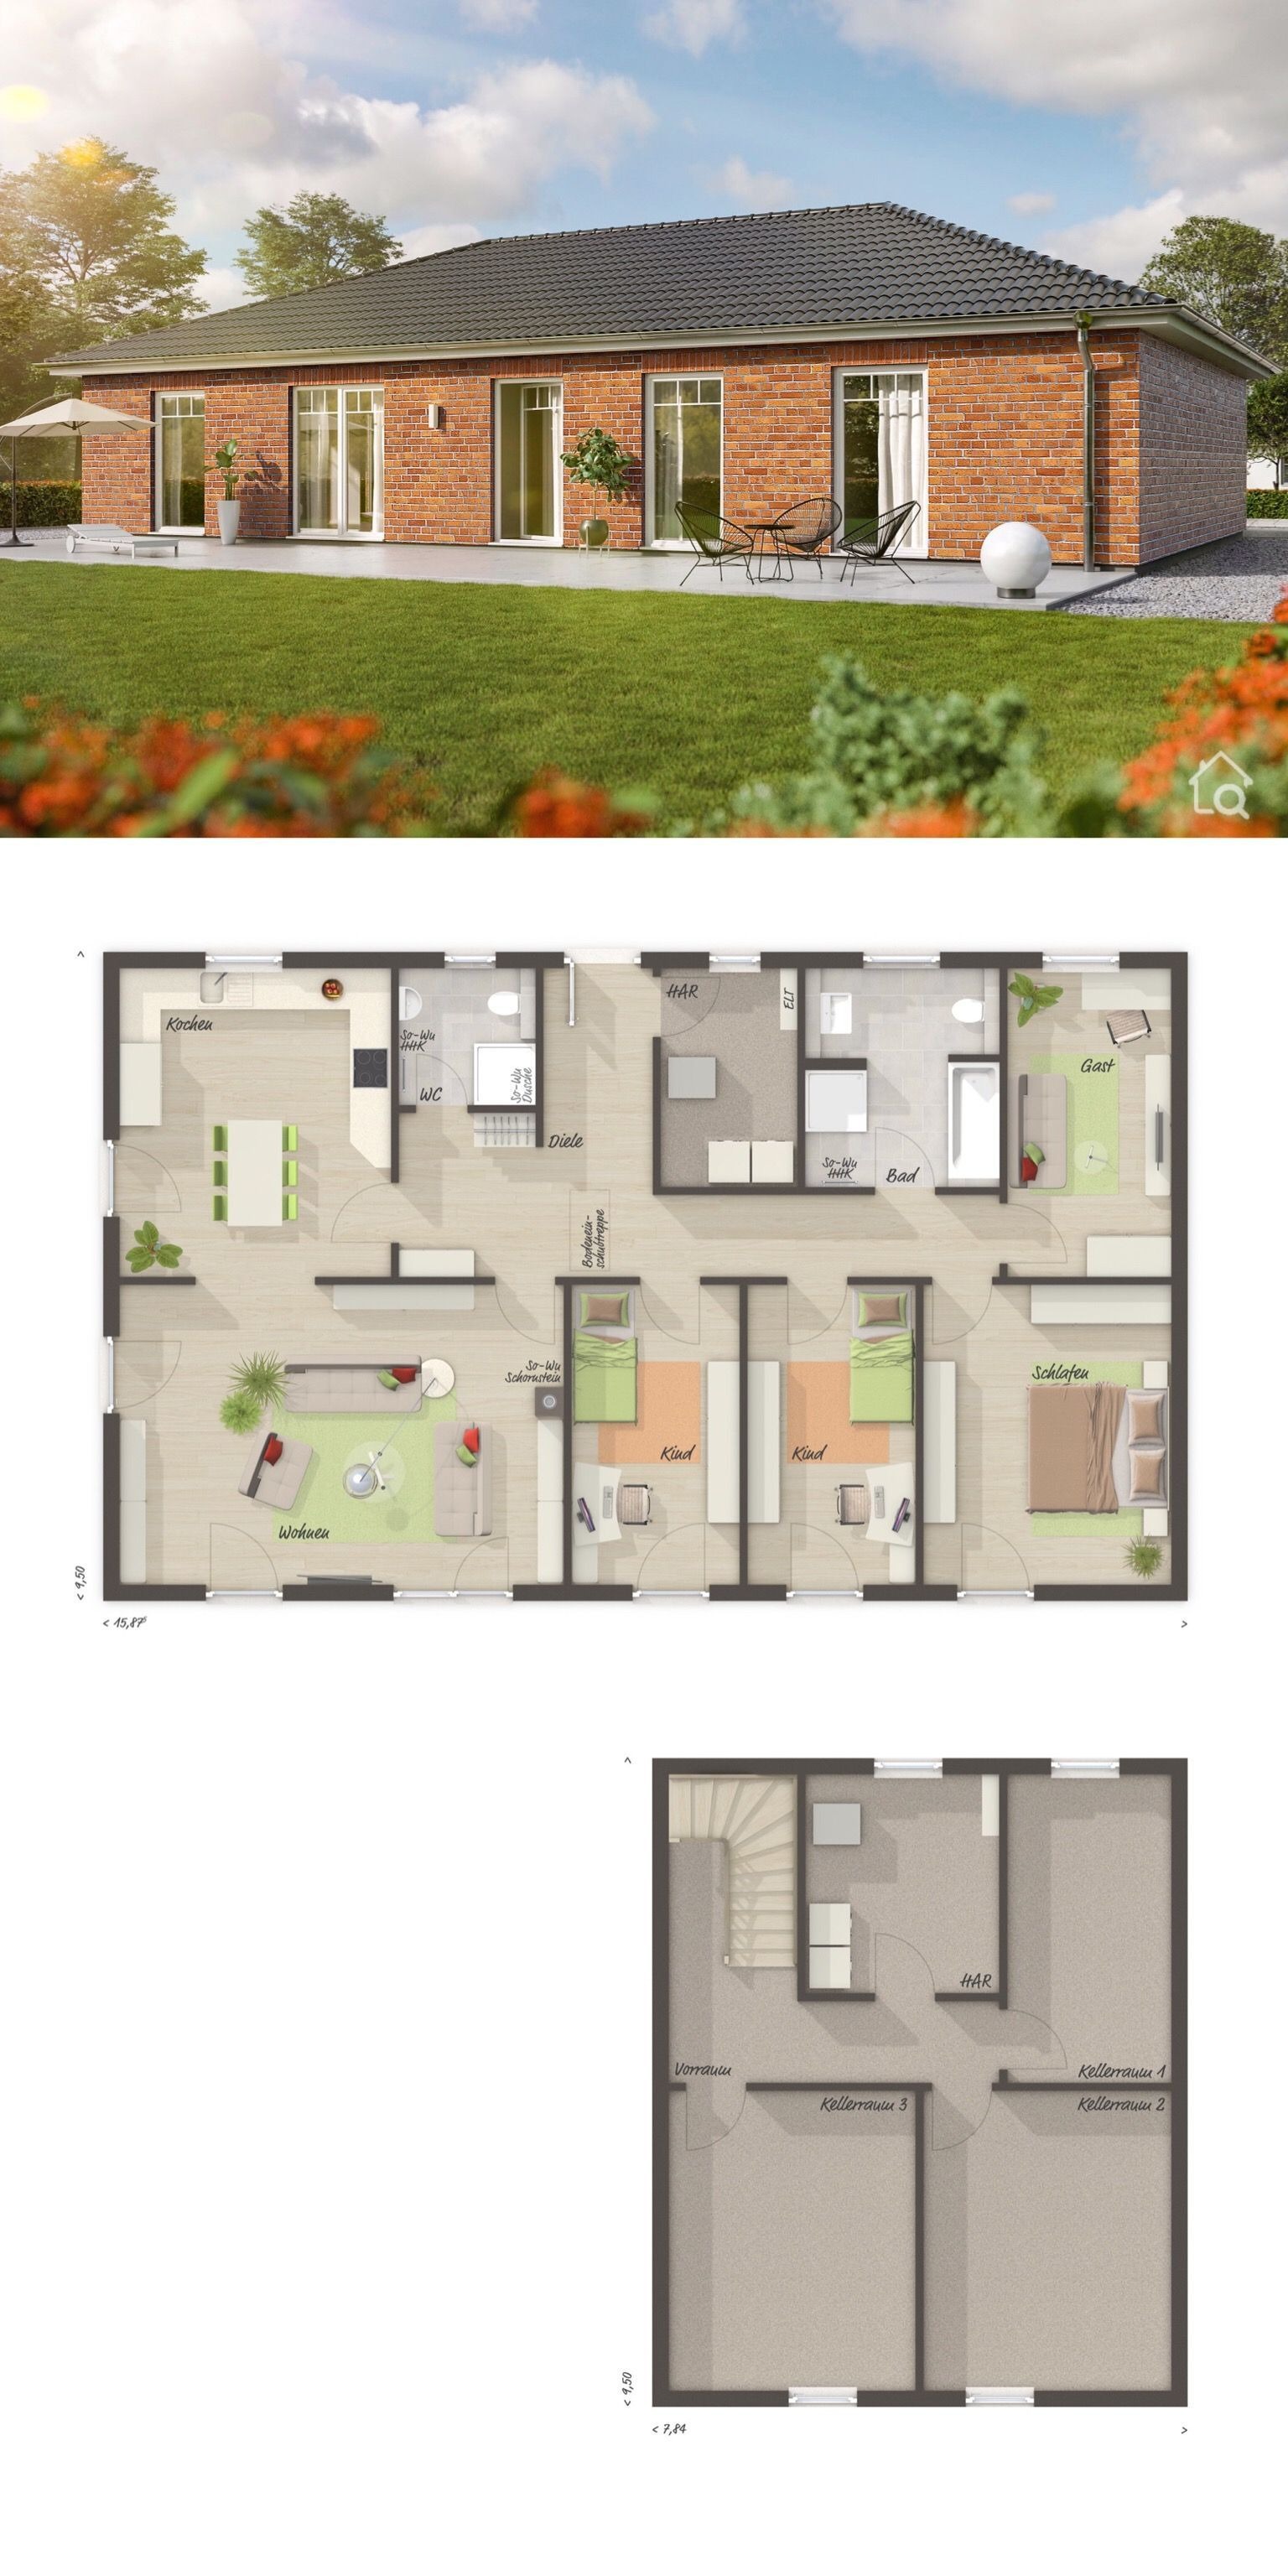 Contemporary House Plans One Story New Bungalow House Plans with E Story & Basement Modern